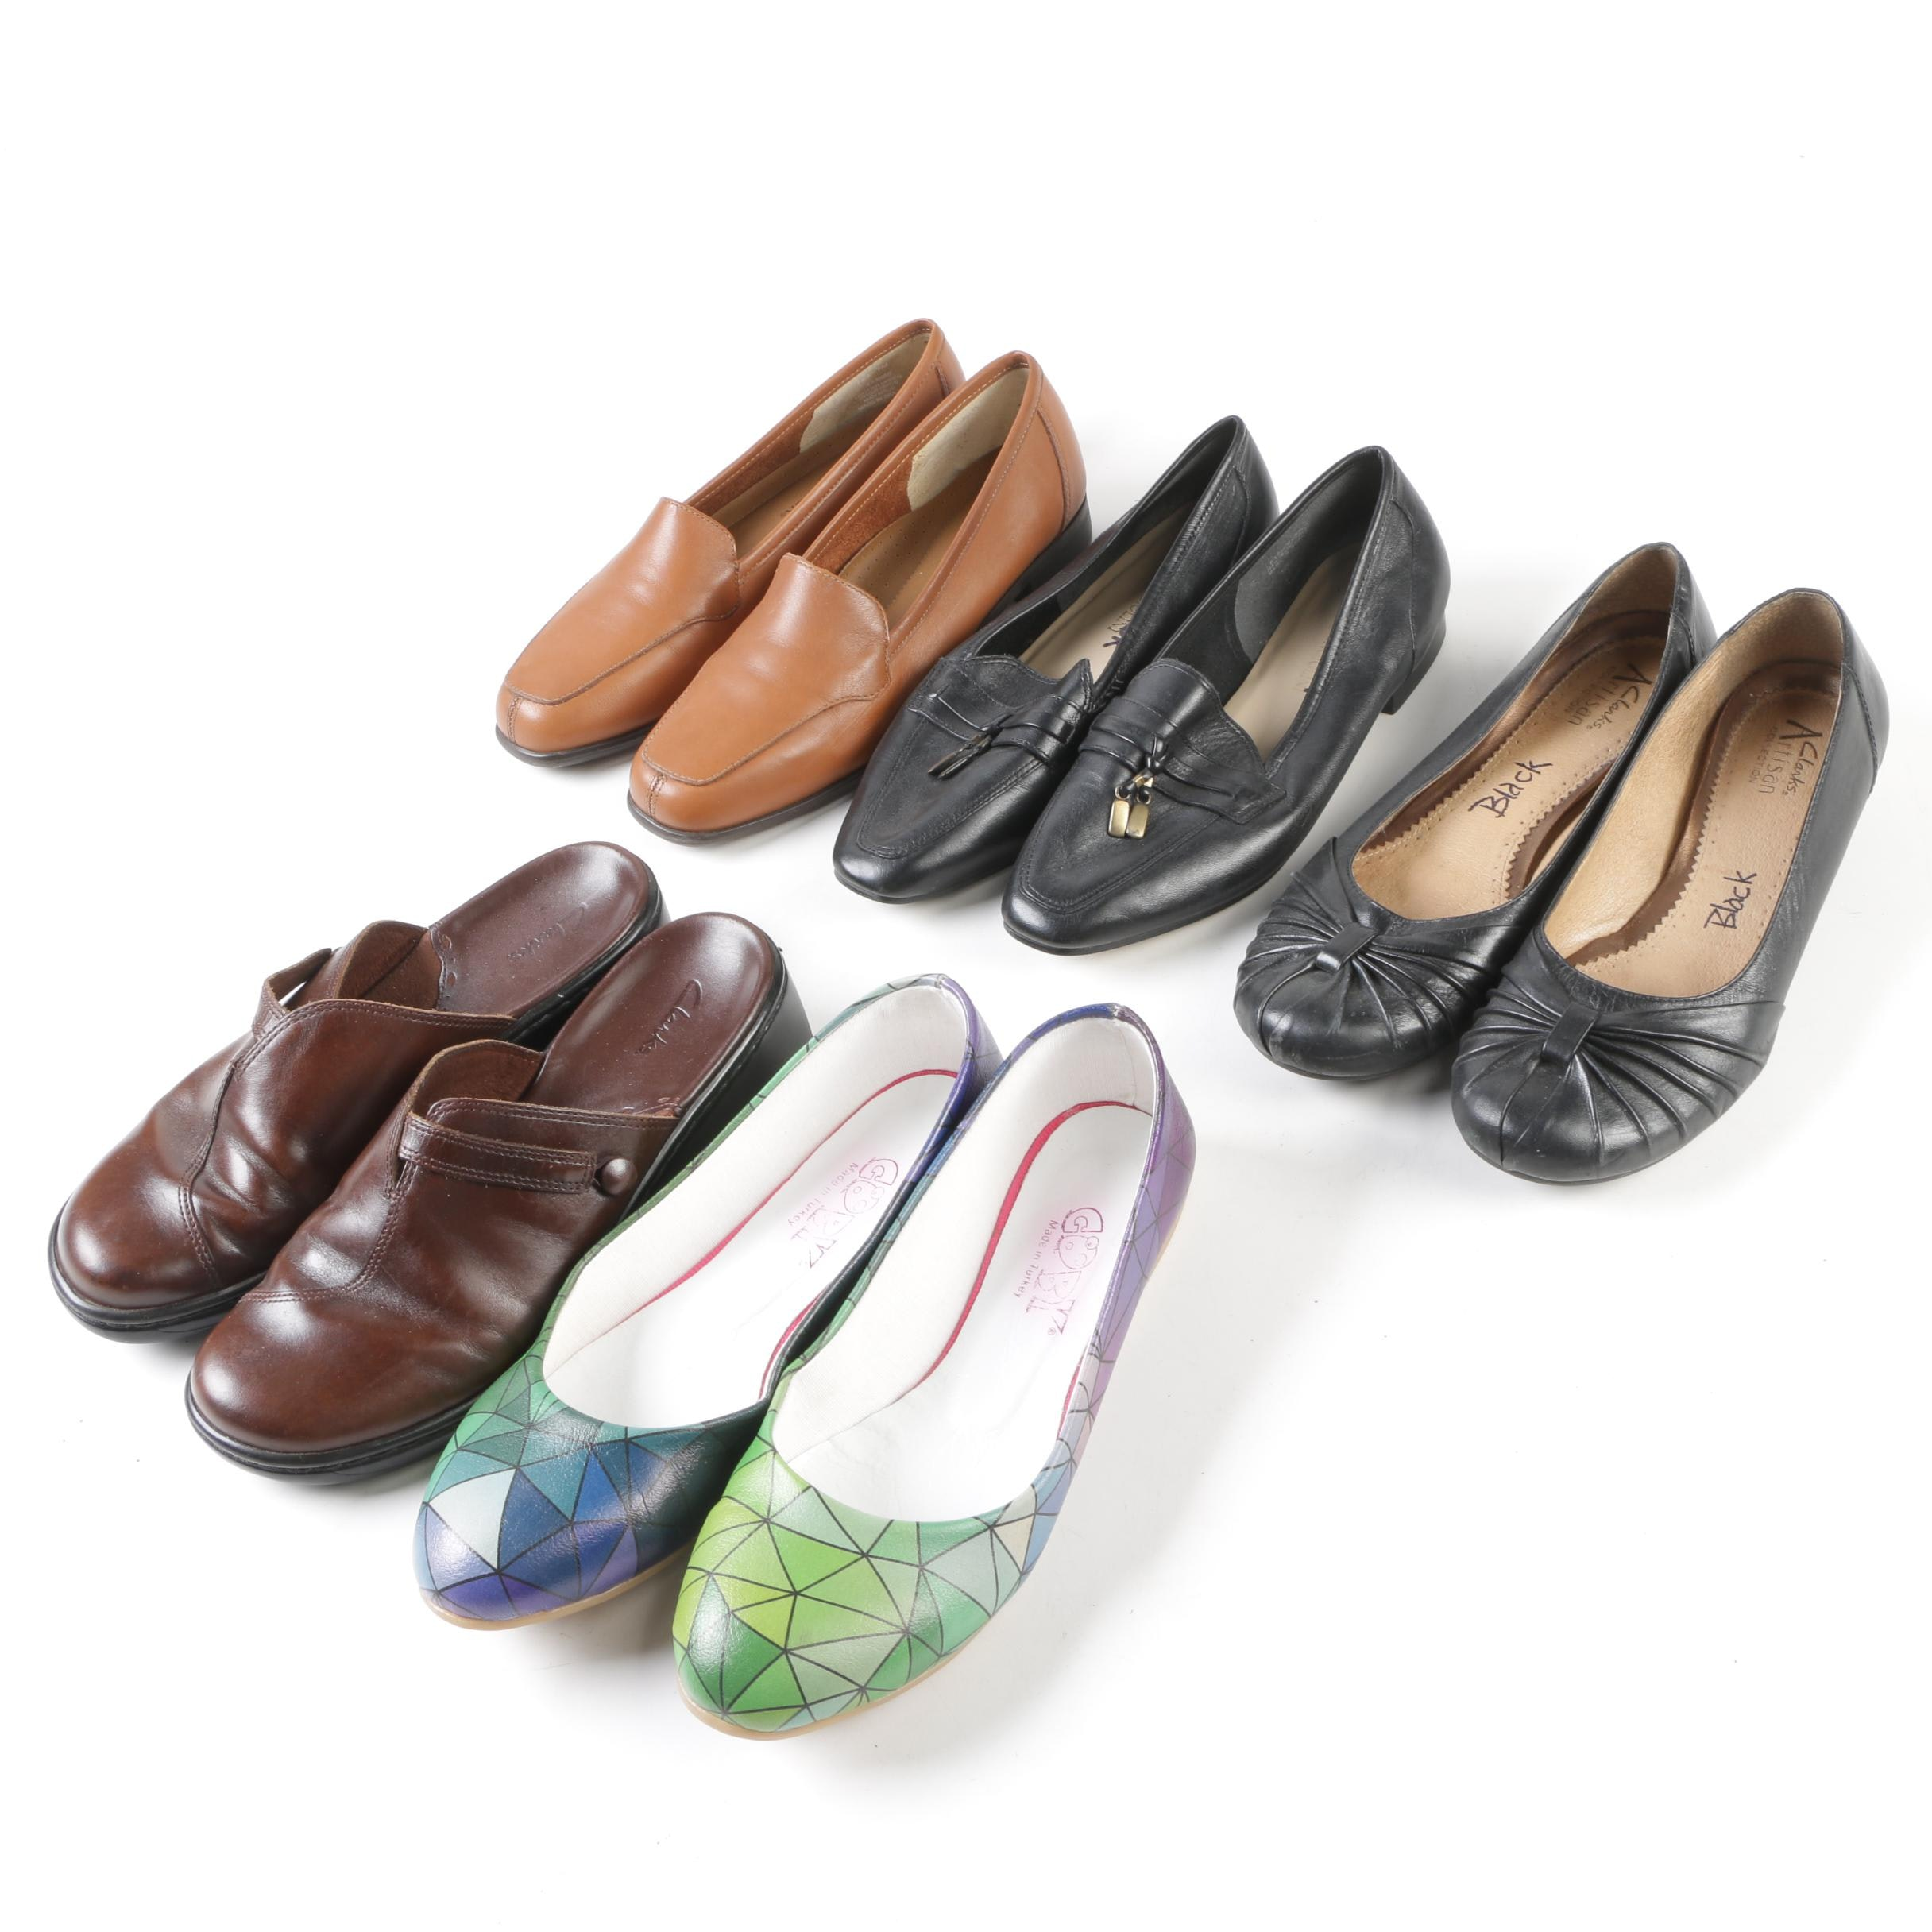 Women's Flats and Mules Including Enzo Angiolini and Clarks